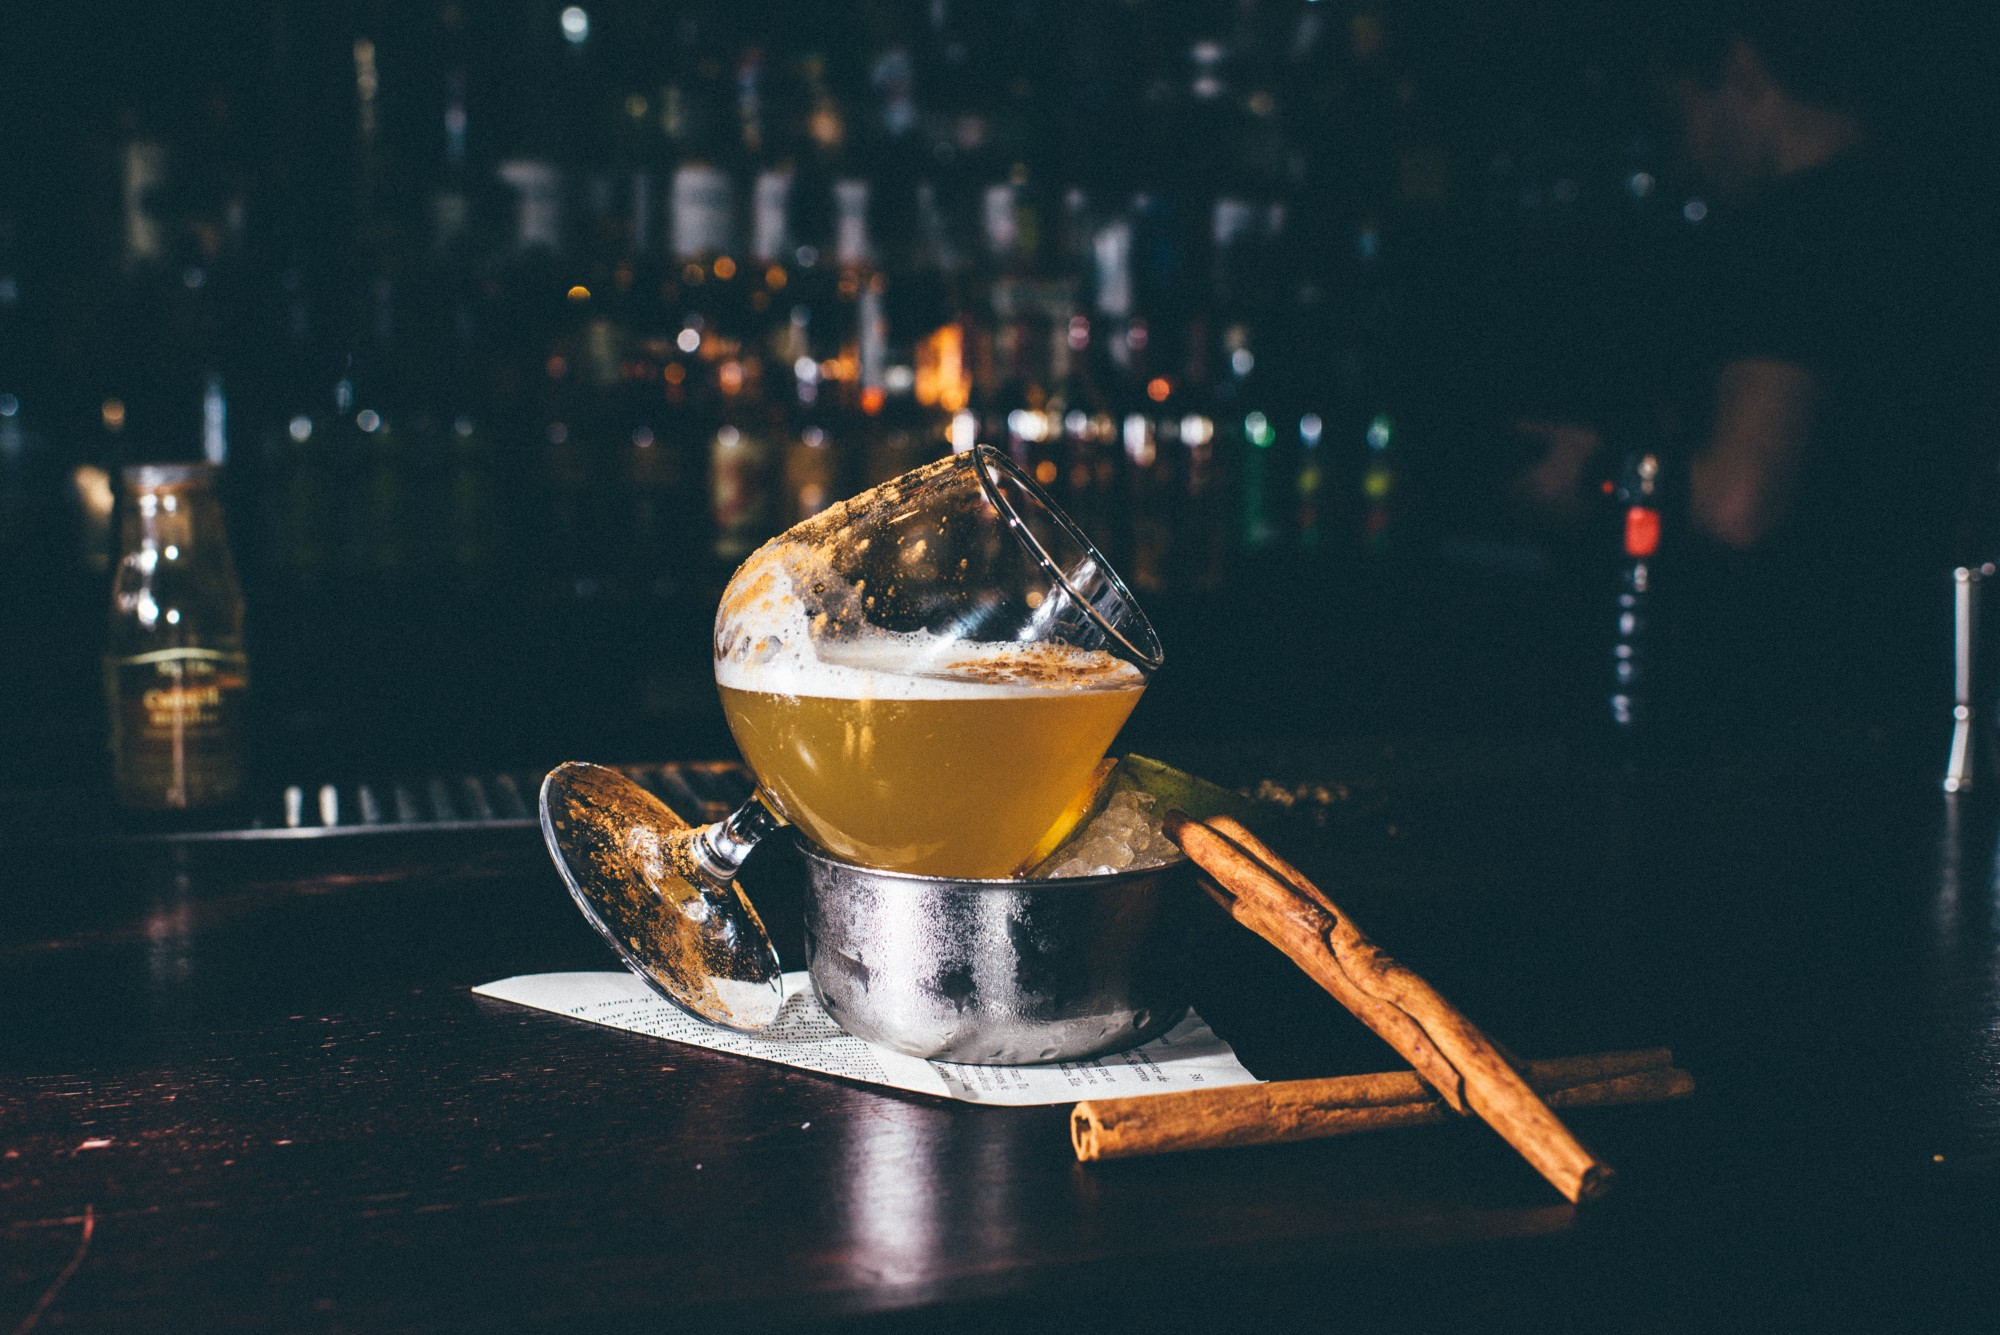 HiP Paris blog. The 3 most outrageous cocktails in Paris. L'Education Sentimental at Shake n' Smash is like fall in a glass. Photo by Jean-Marie Heidinger.